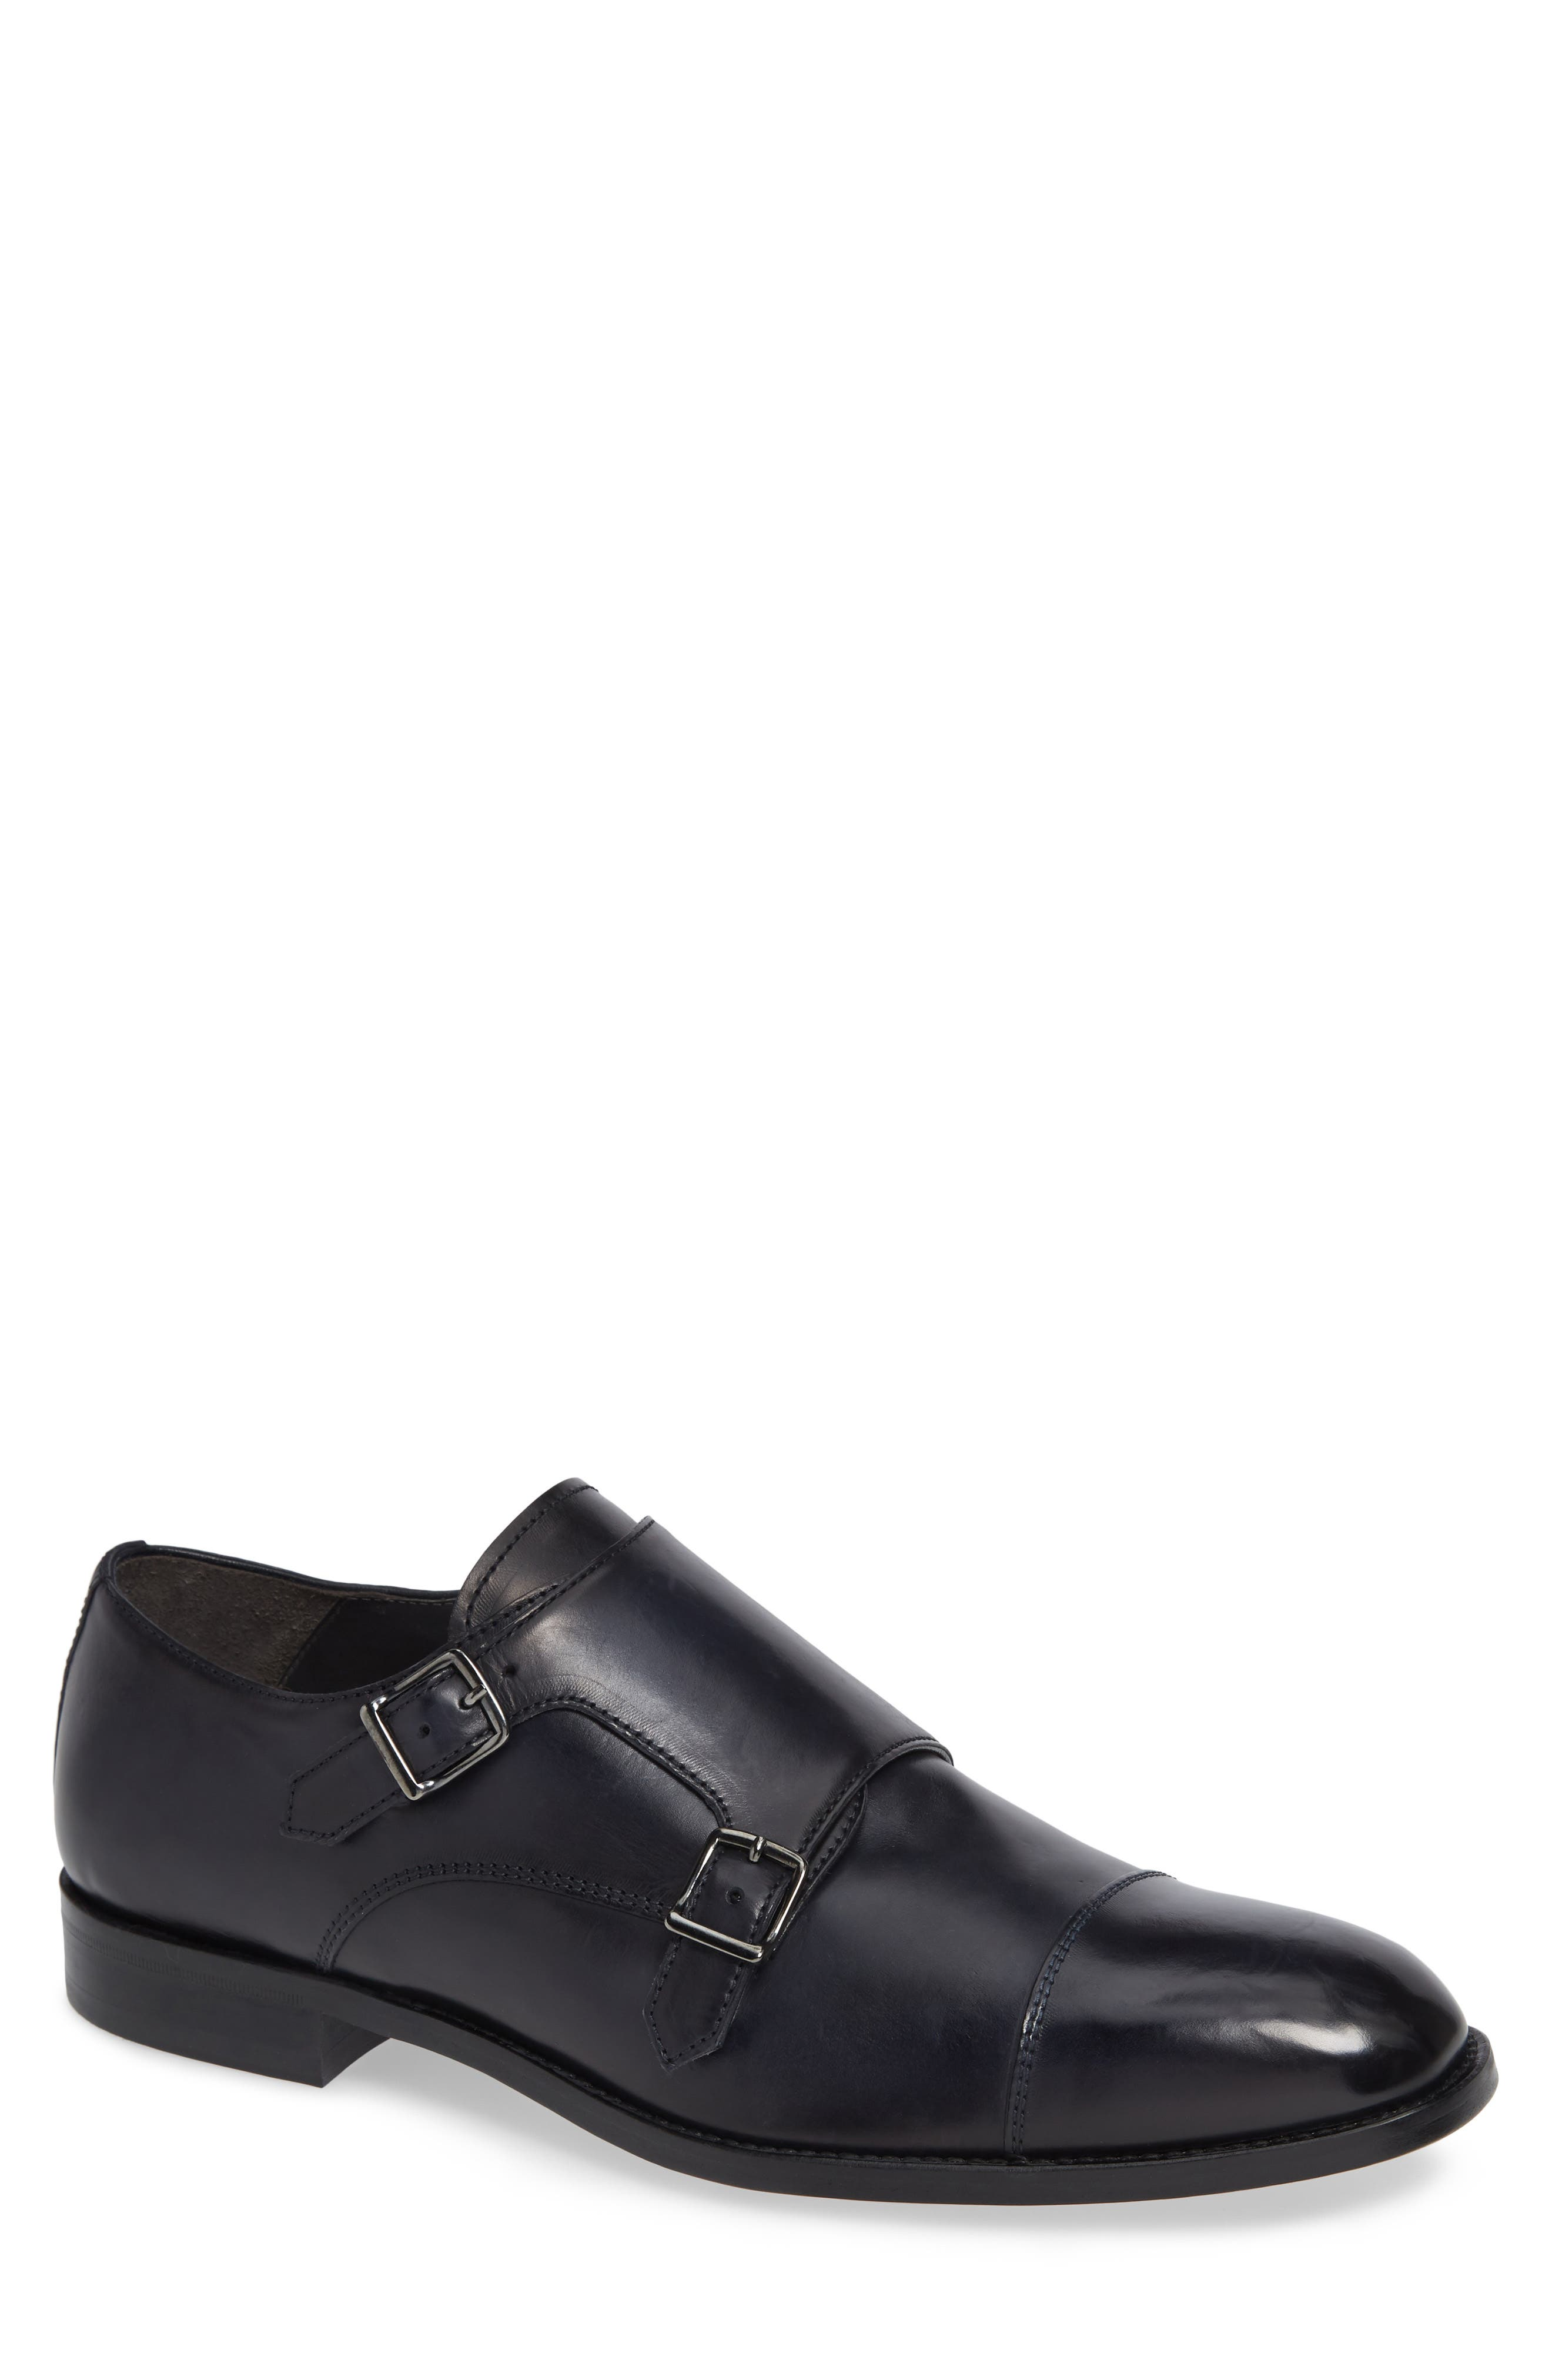 Image of To Boot New York Quentin Cap Toe Monk Shoe